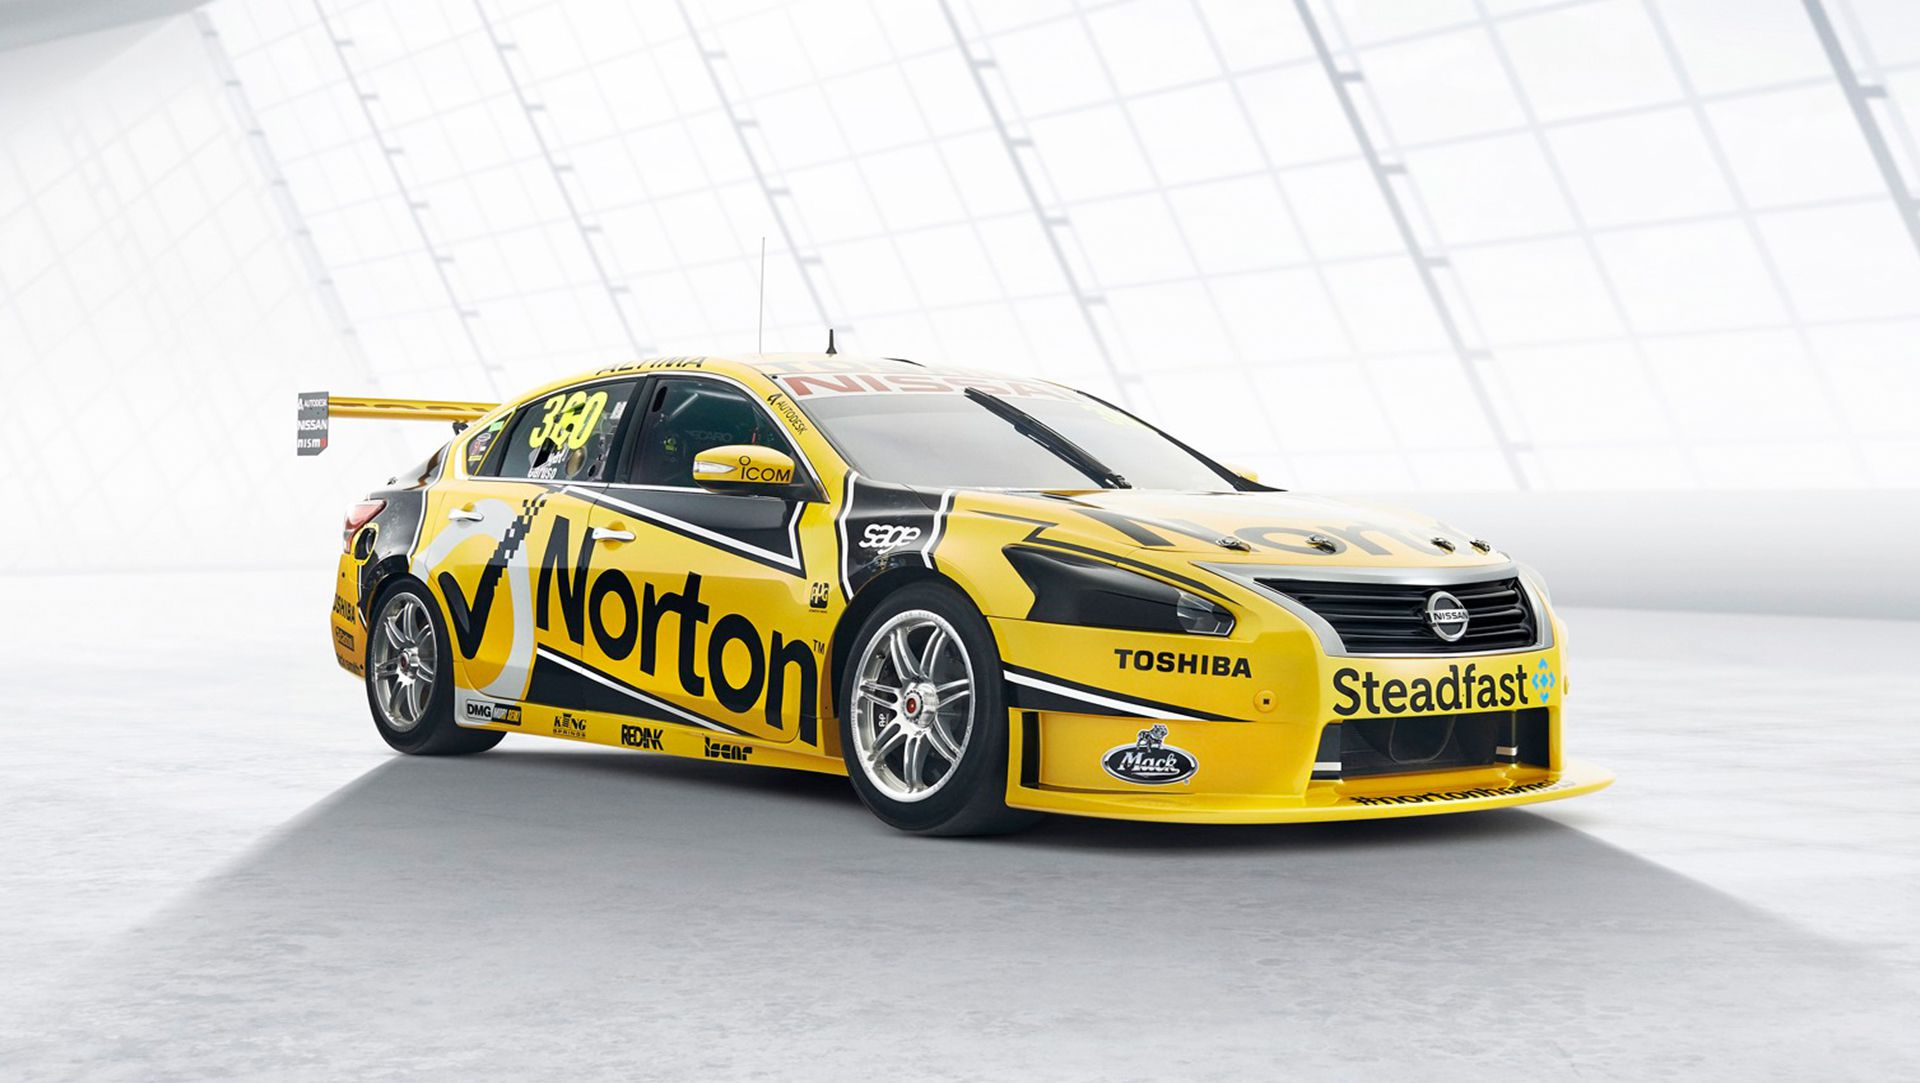 Norton Hornets Show The Colors Of Their 2014 Nissan Altima V8 Supercars  Contender